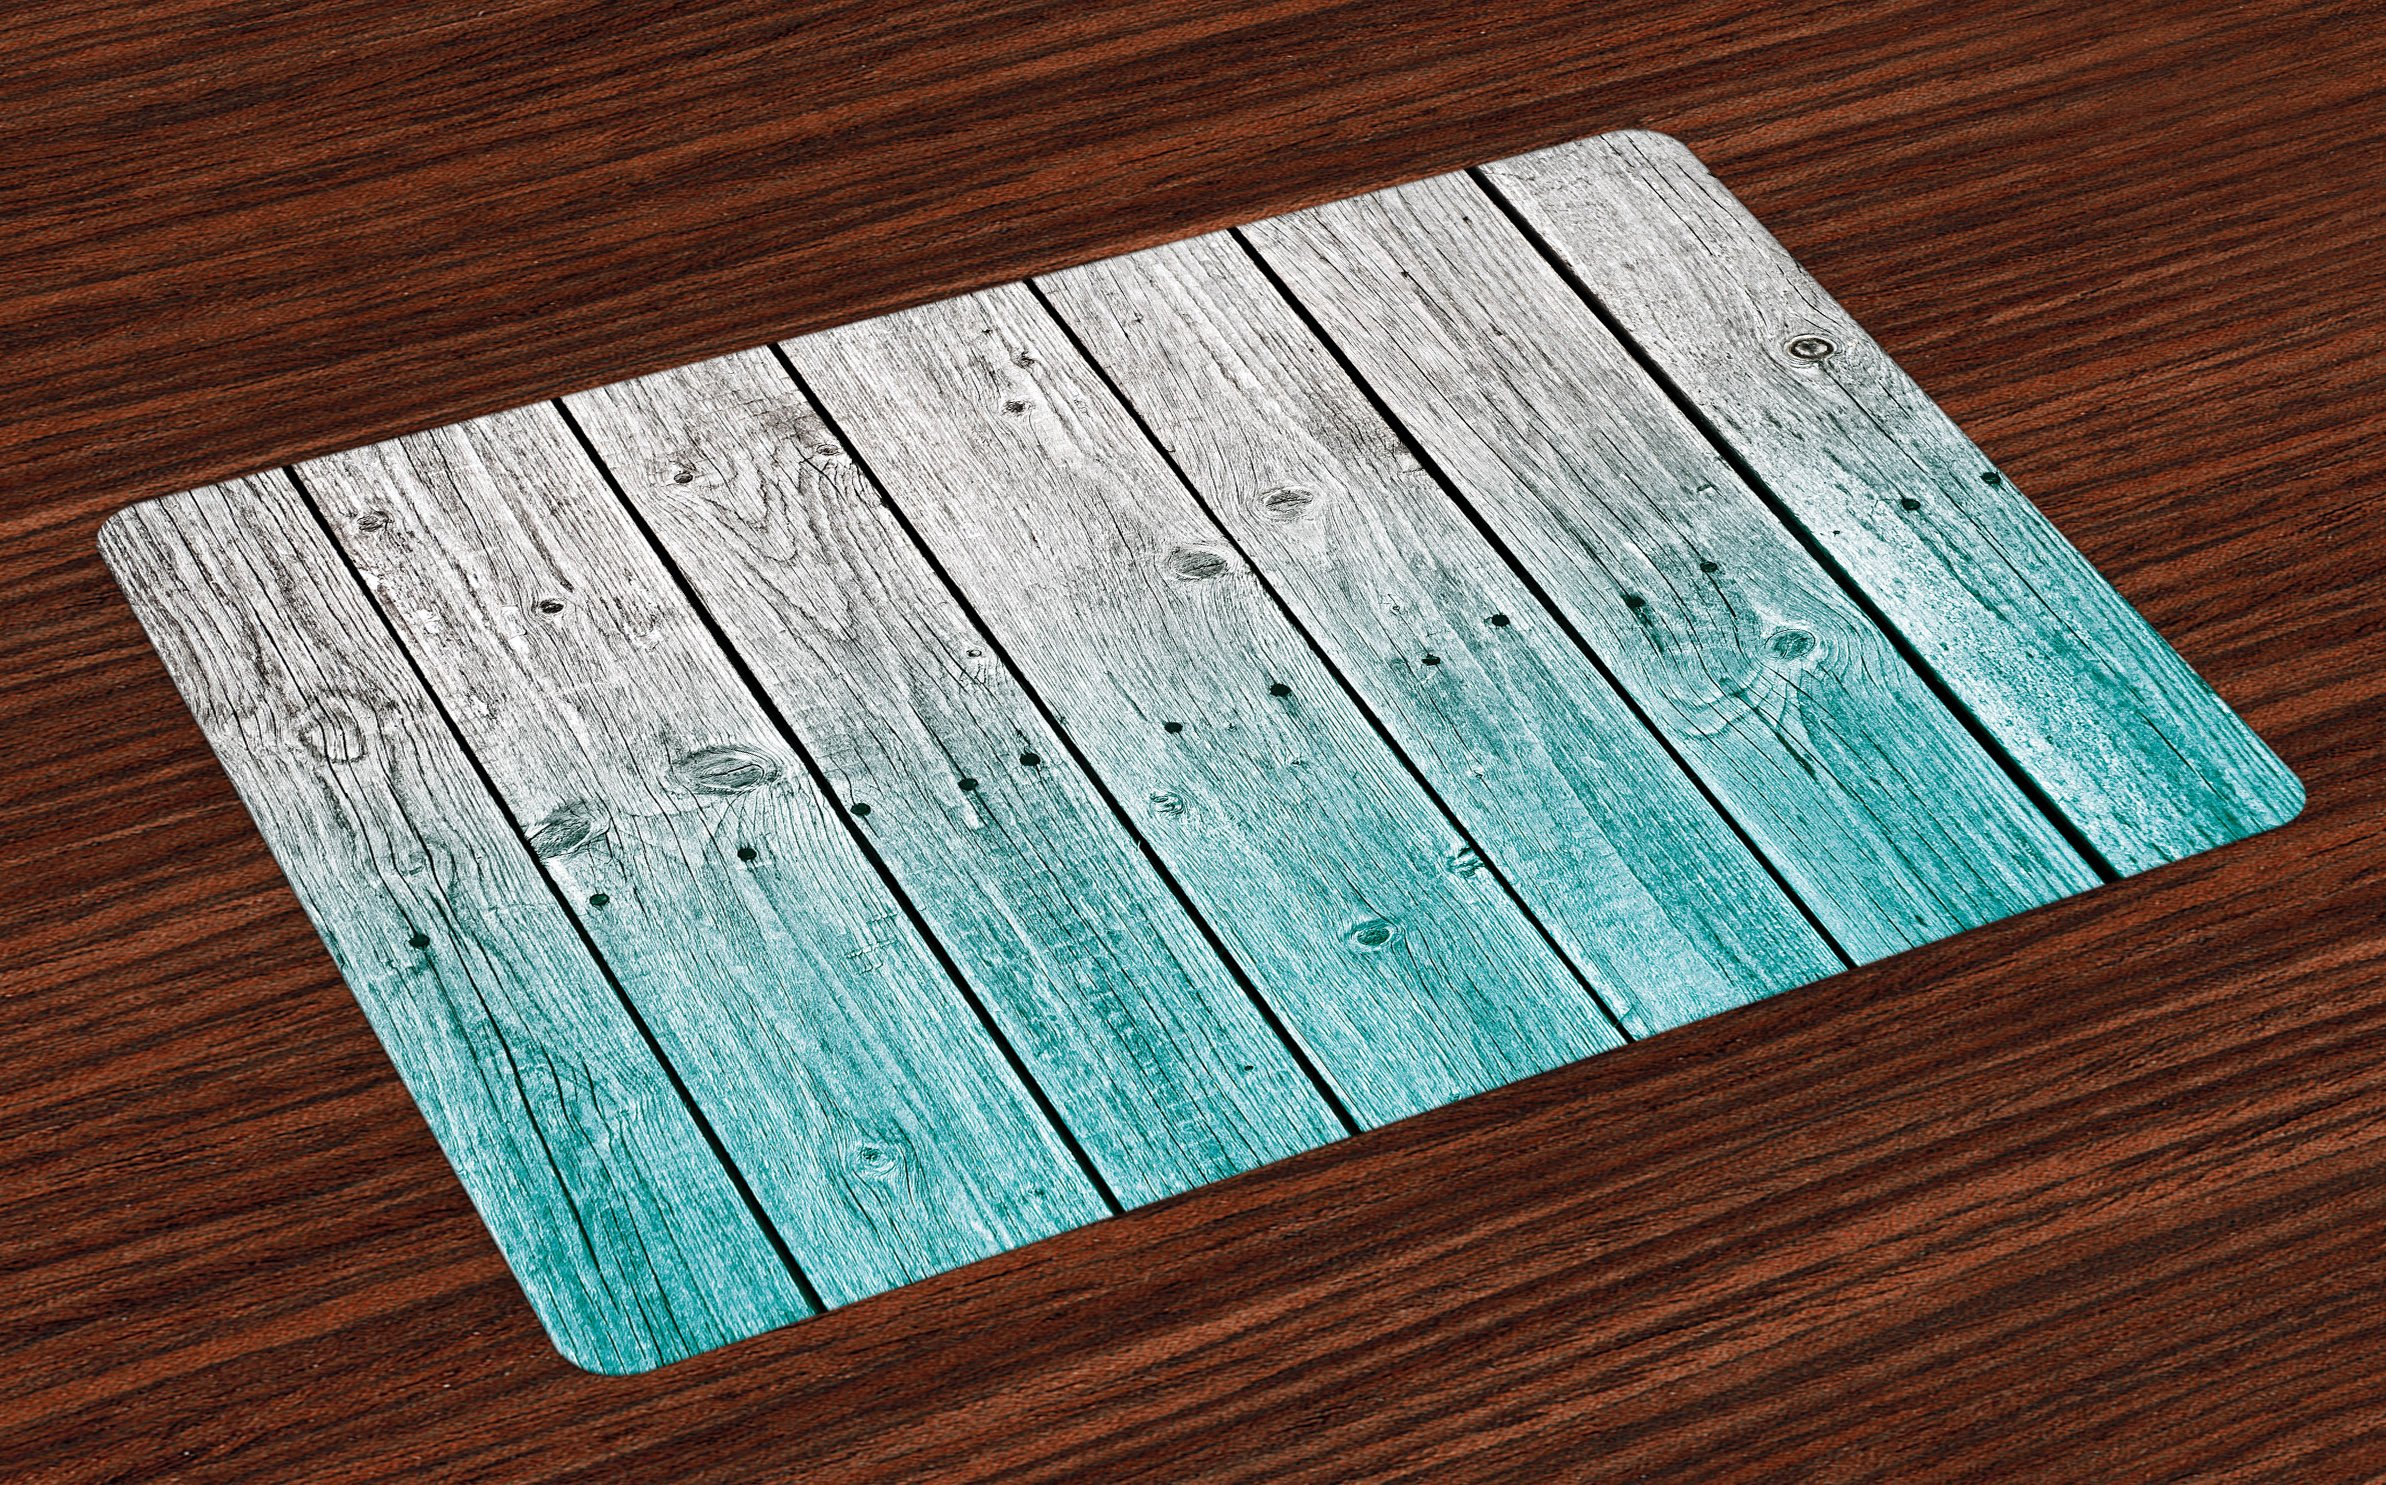 Ambesonne Rustic Place Mats Set of 4, Wood Panels Background with Digital Tones Effect Country House Art Image, Washable Fabric Placemats for Dining Room Kitchen Table Decor, Pale Blue and Grey